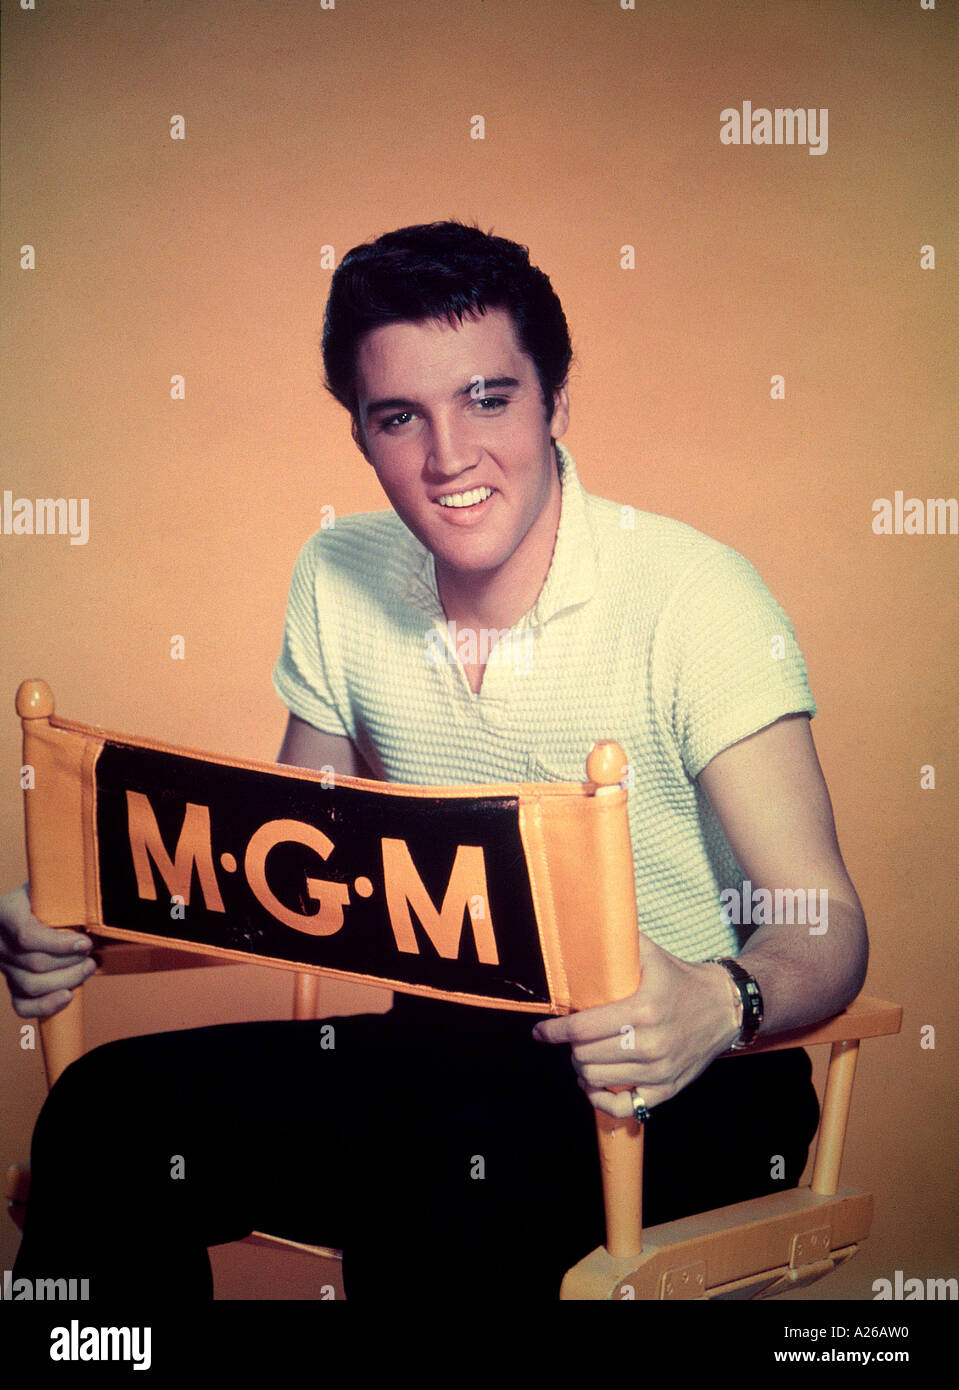 ELVIS PRESLEY publicity picture from 1957 - Stock Image